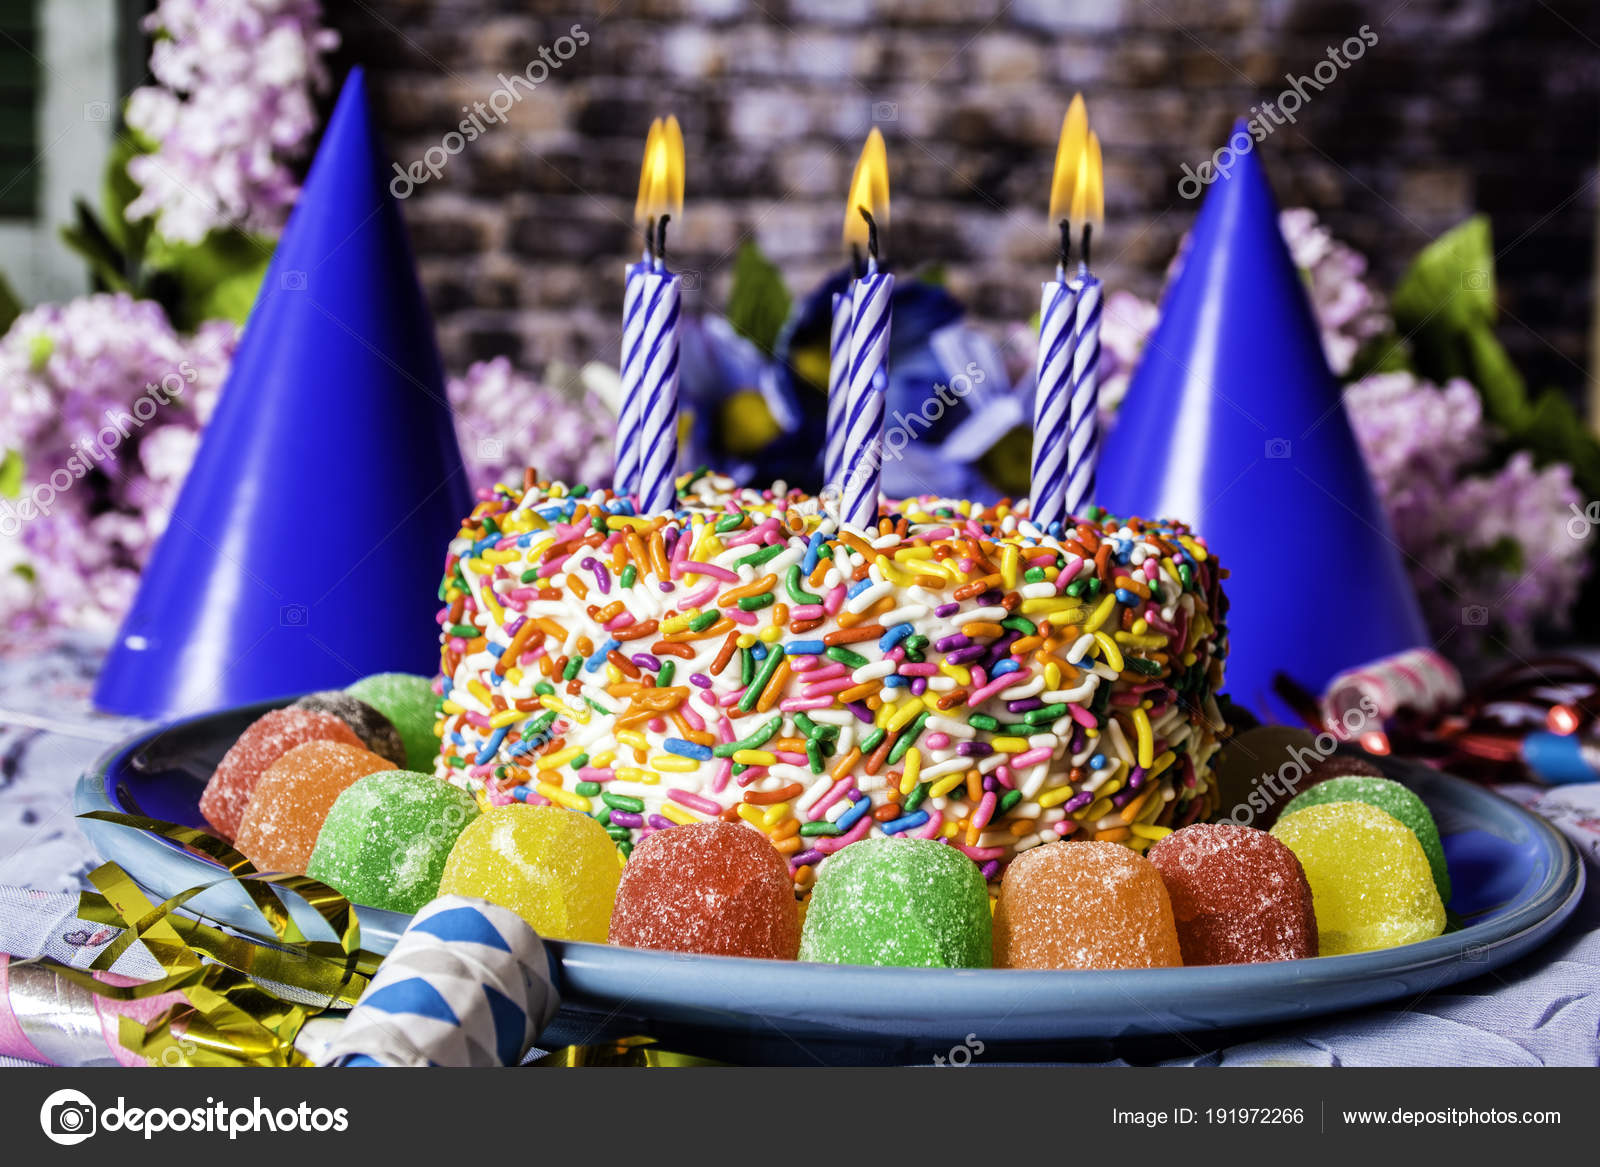 Birthday Cake Rainbow Sprinkles Blue Plate Surrounded Assorted